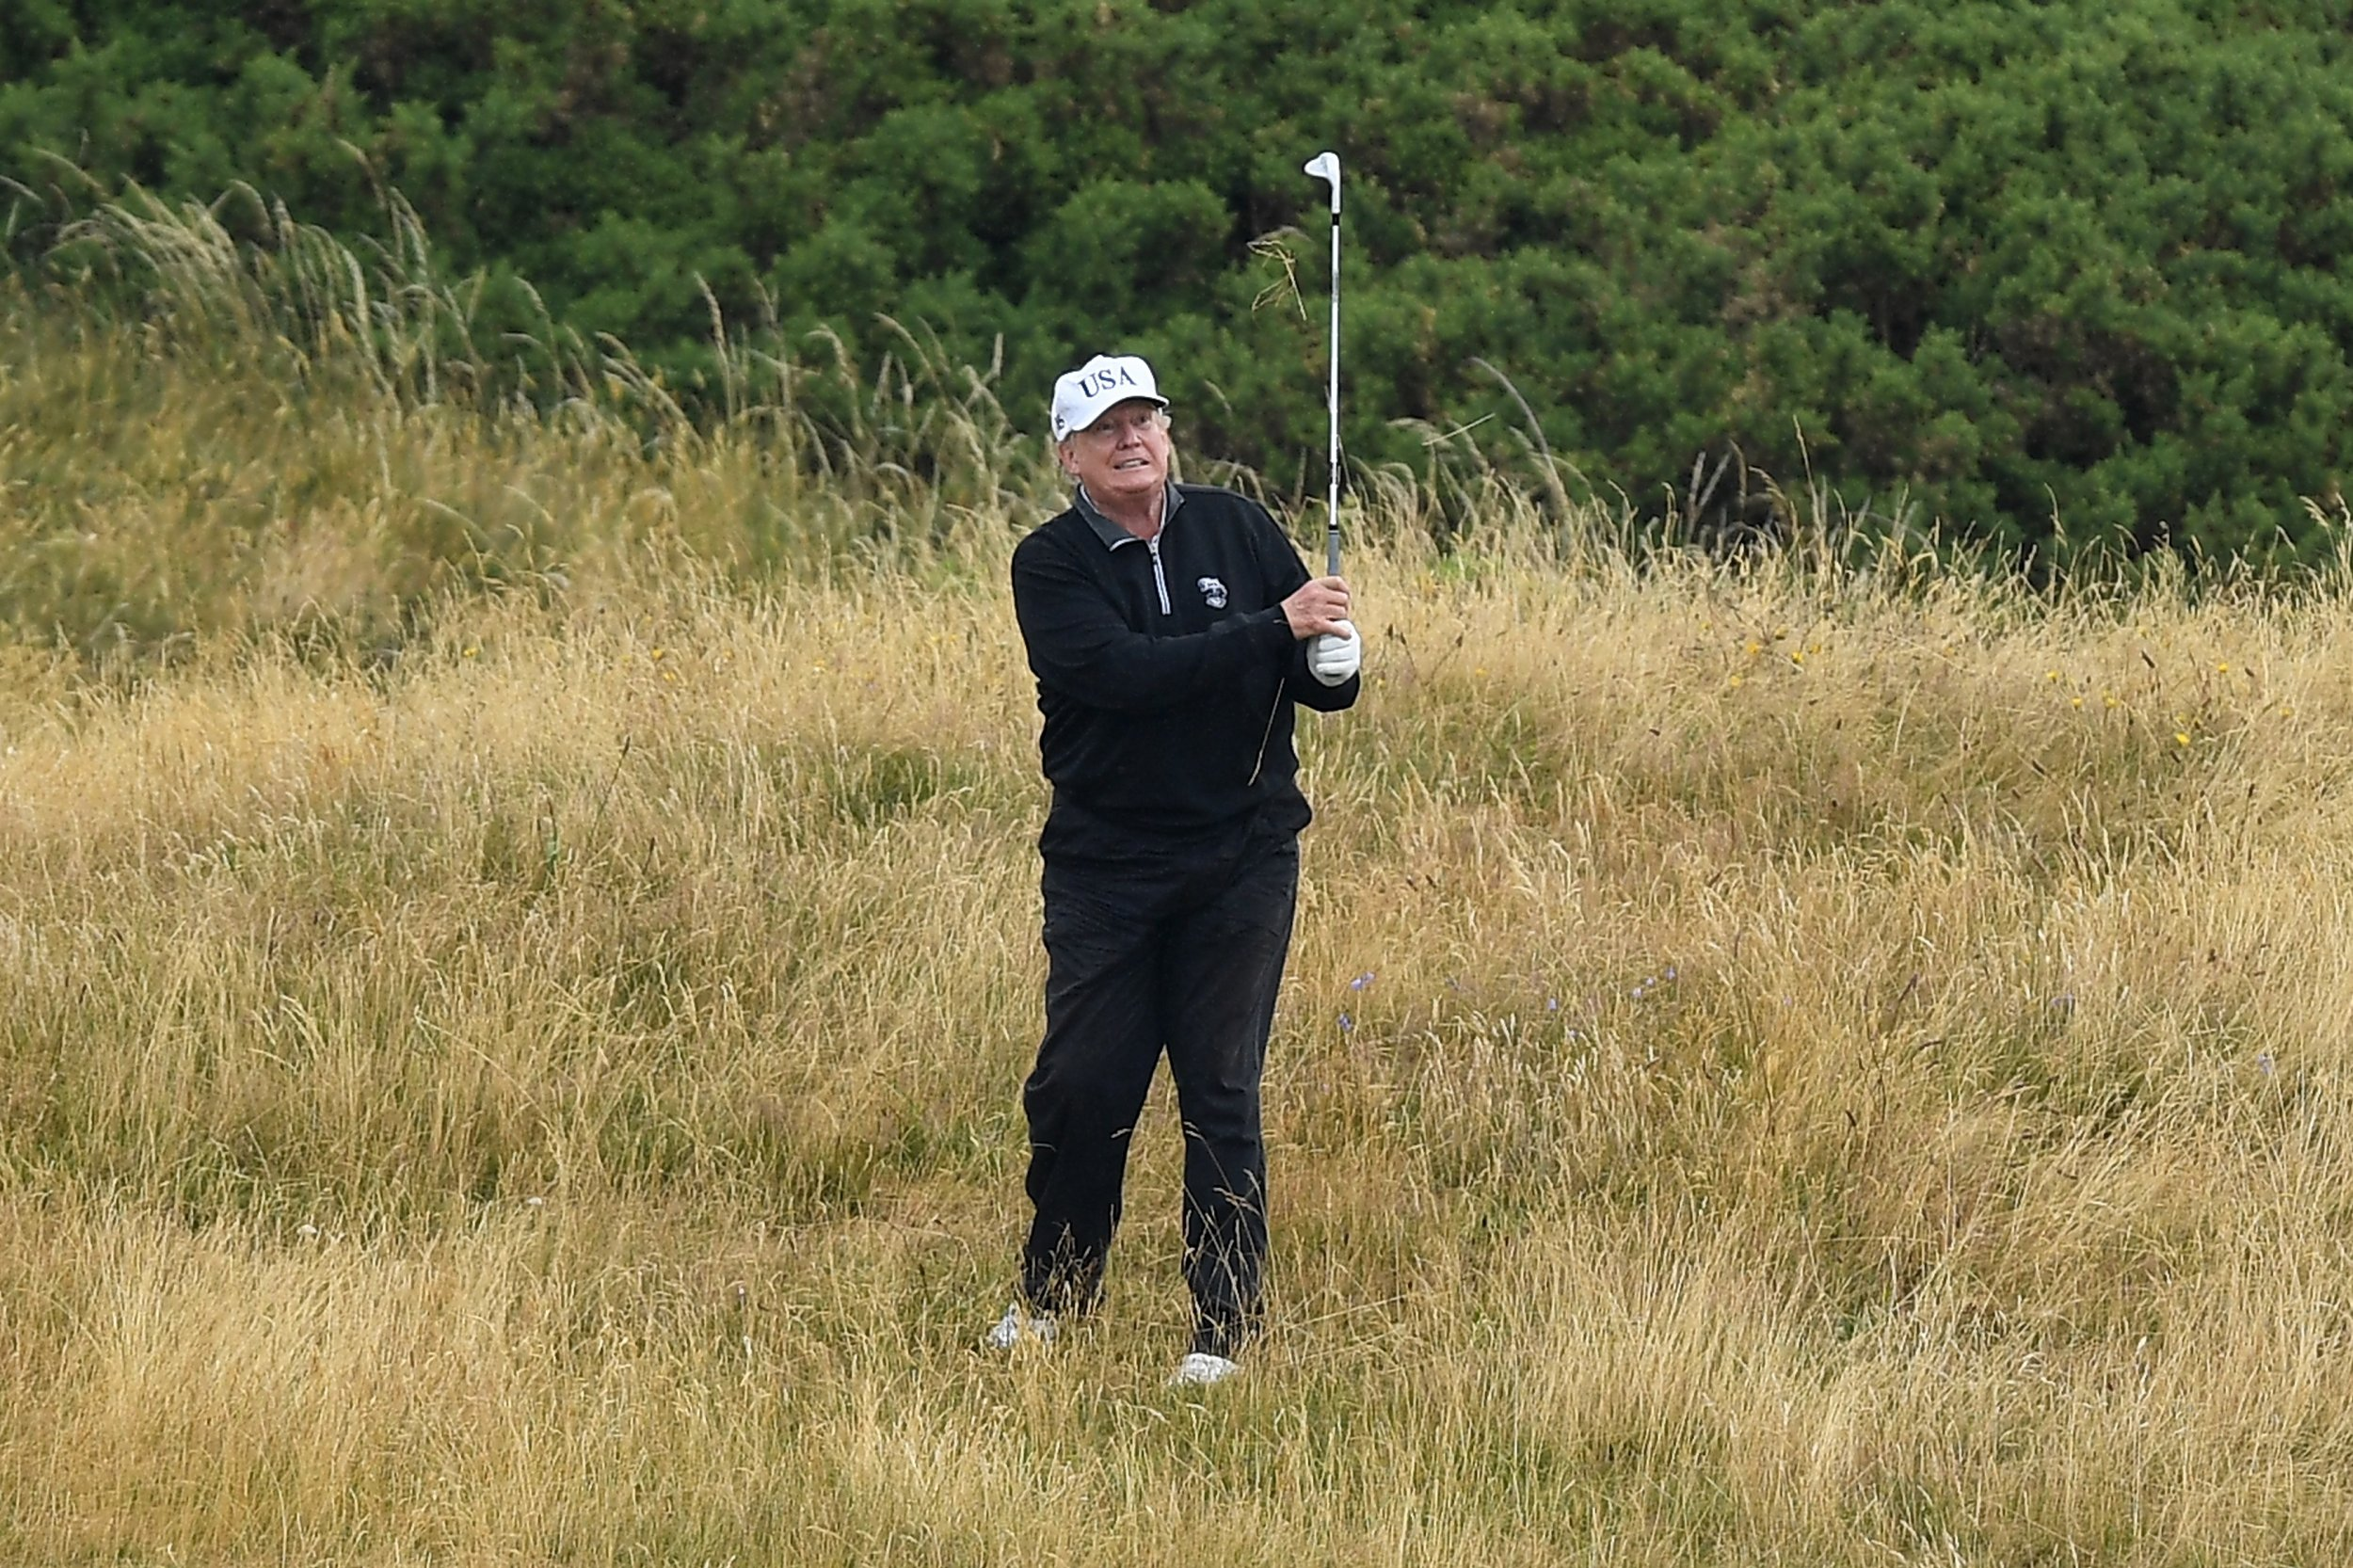 newsweek.com - Ewan Palmer - Donald Trump reportedly removed trees from golf courses to help him win